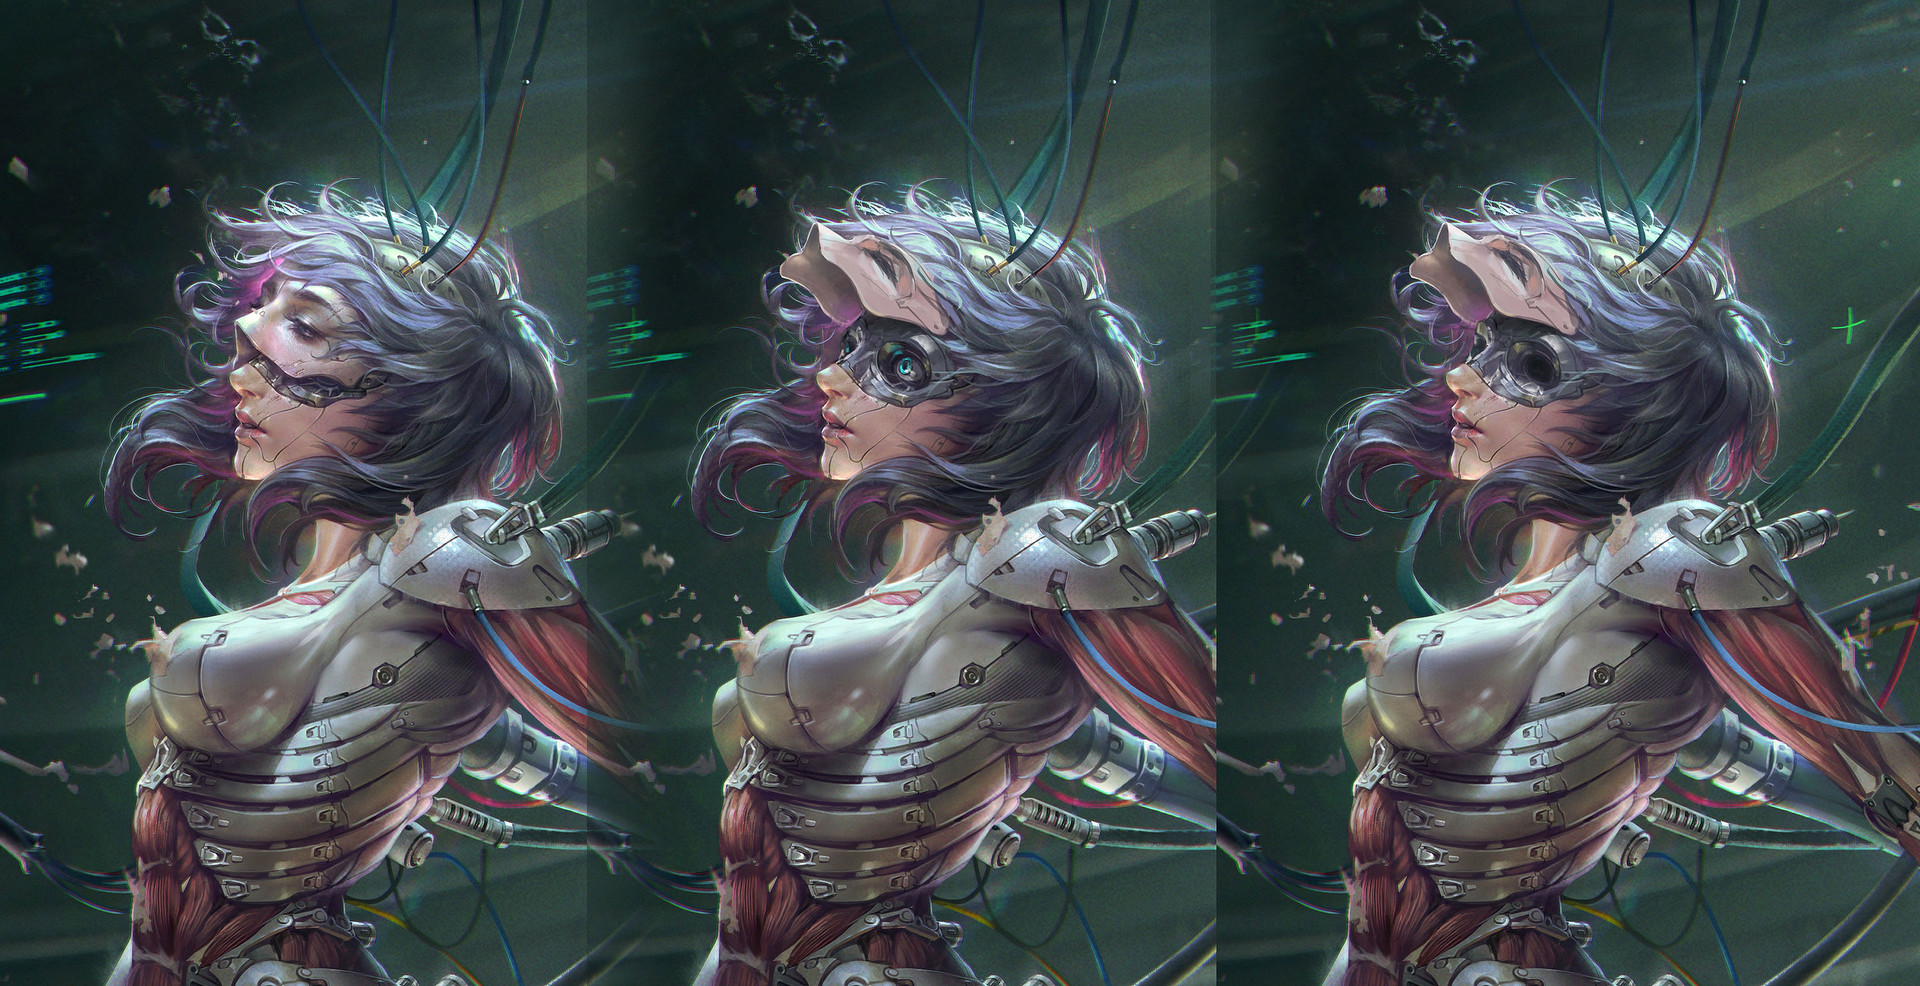 Jeremy chong ghostintheshell final difface